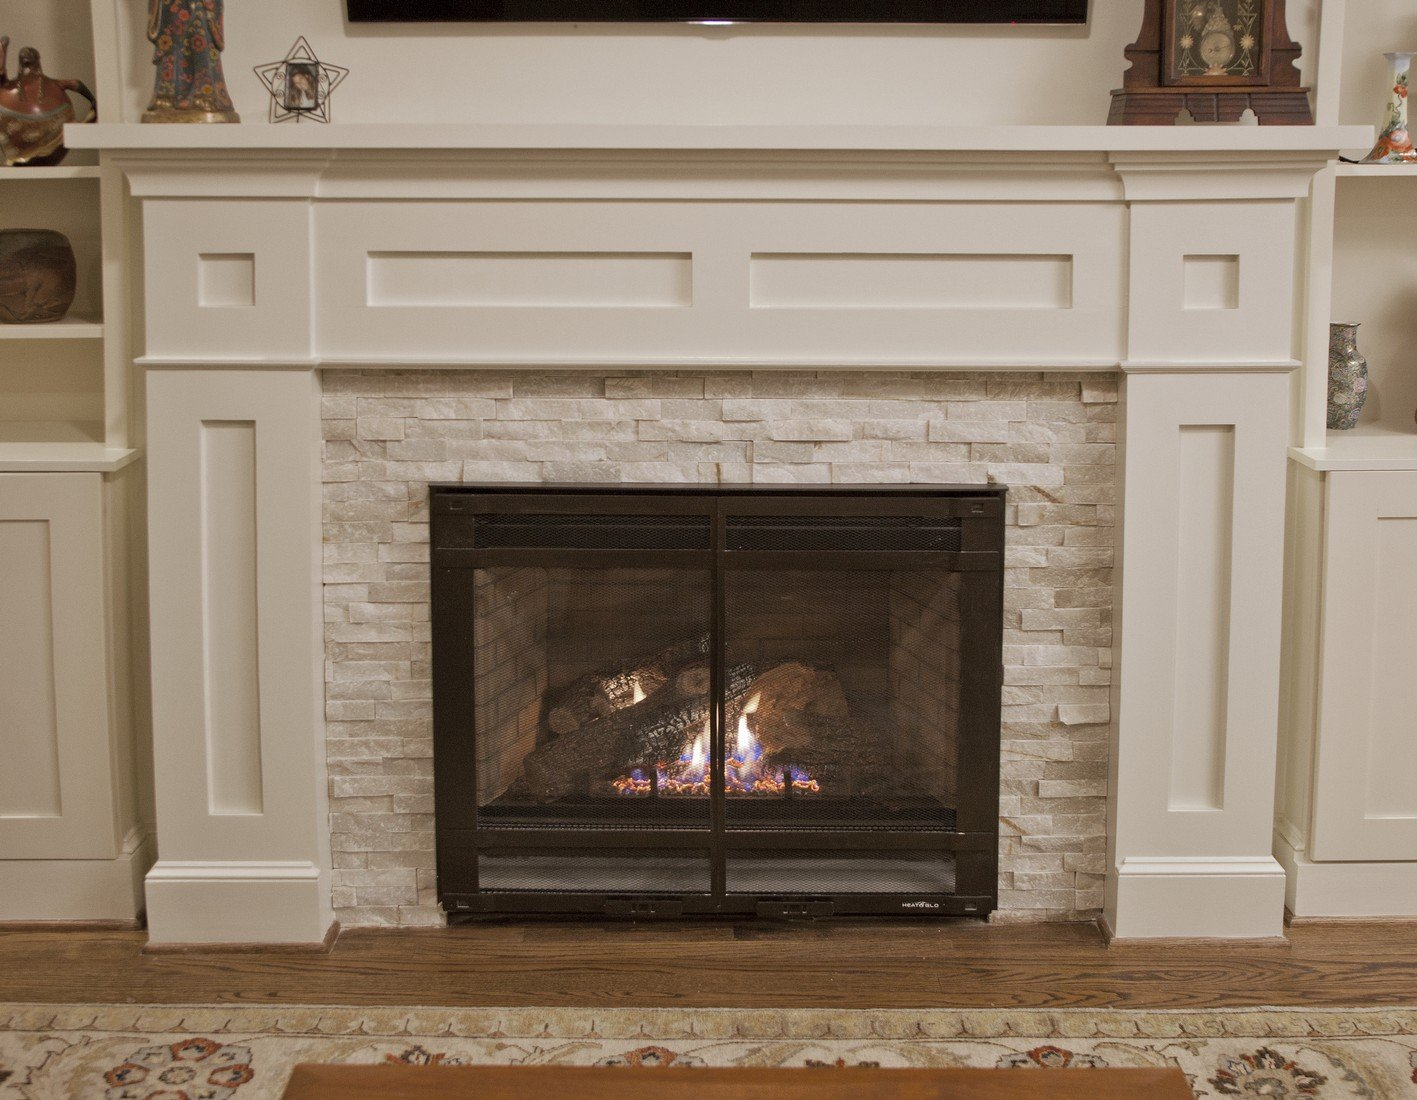 Are Vent-Free Gas Fireplaces Safe? - What Is A Ventless Fireplace? Fireplaces Without Chimneys